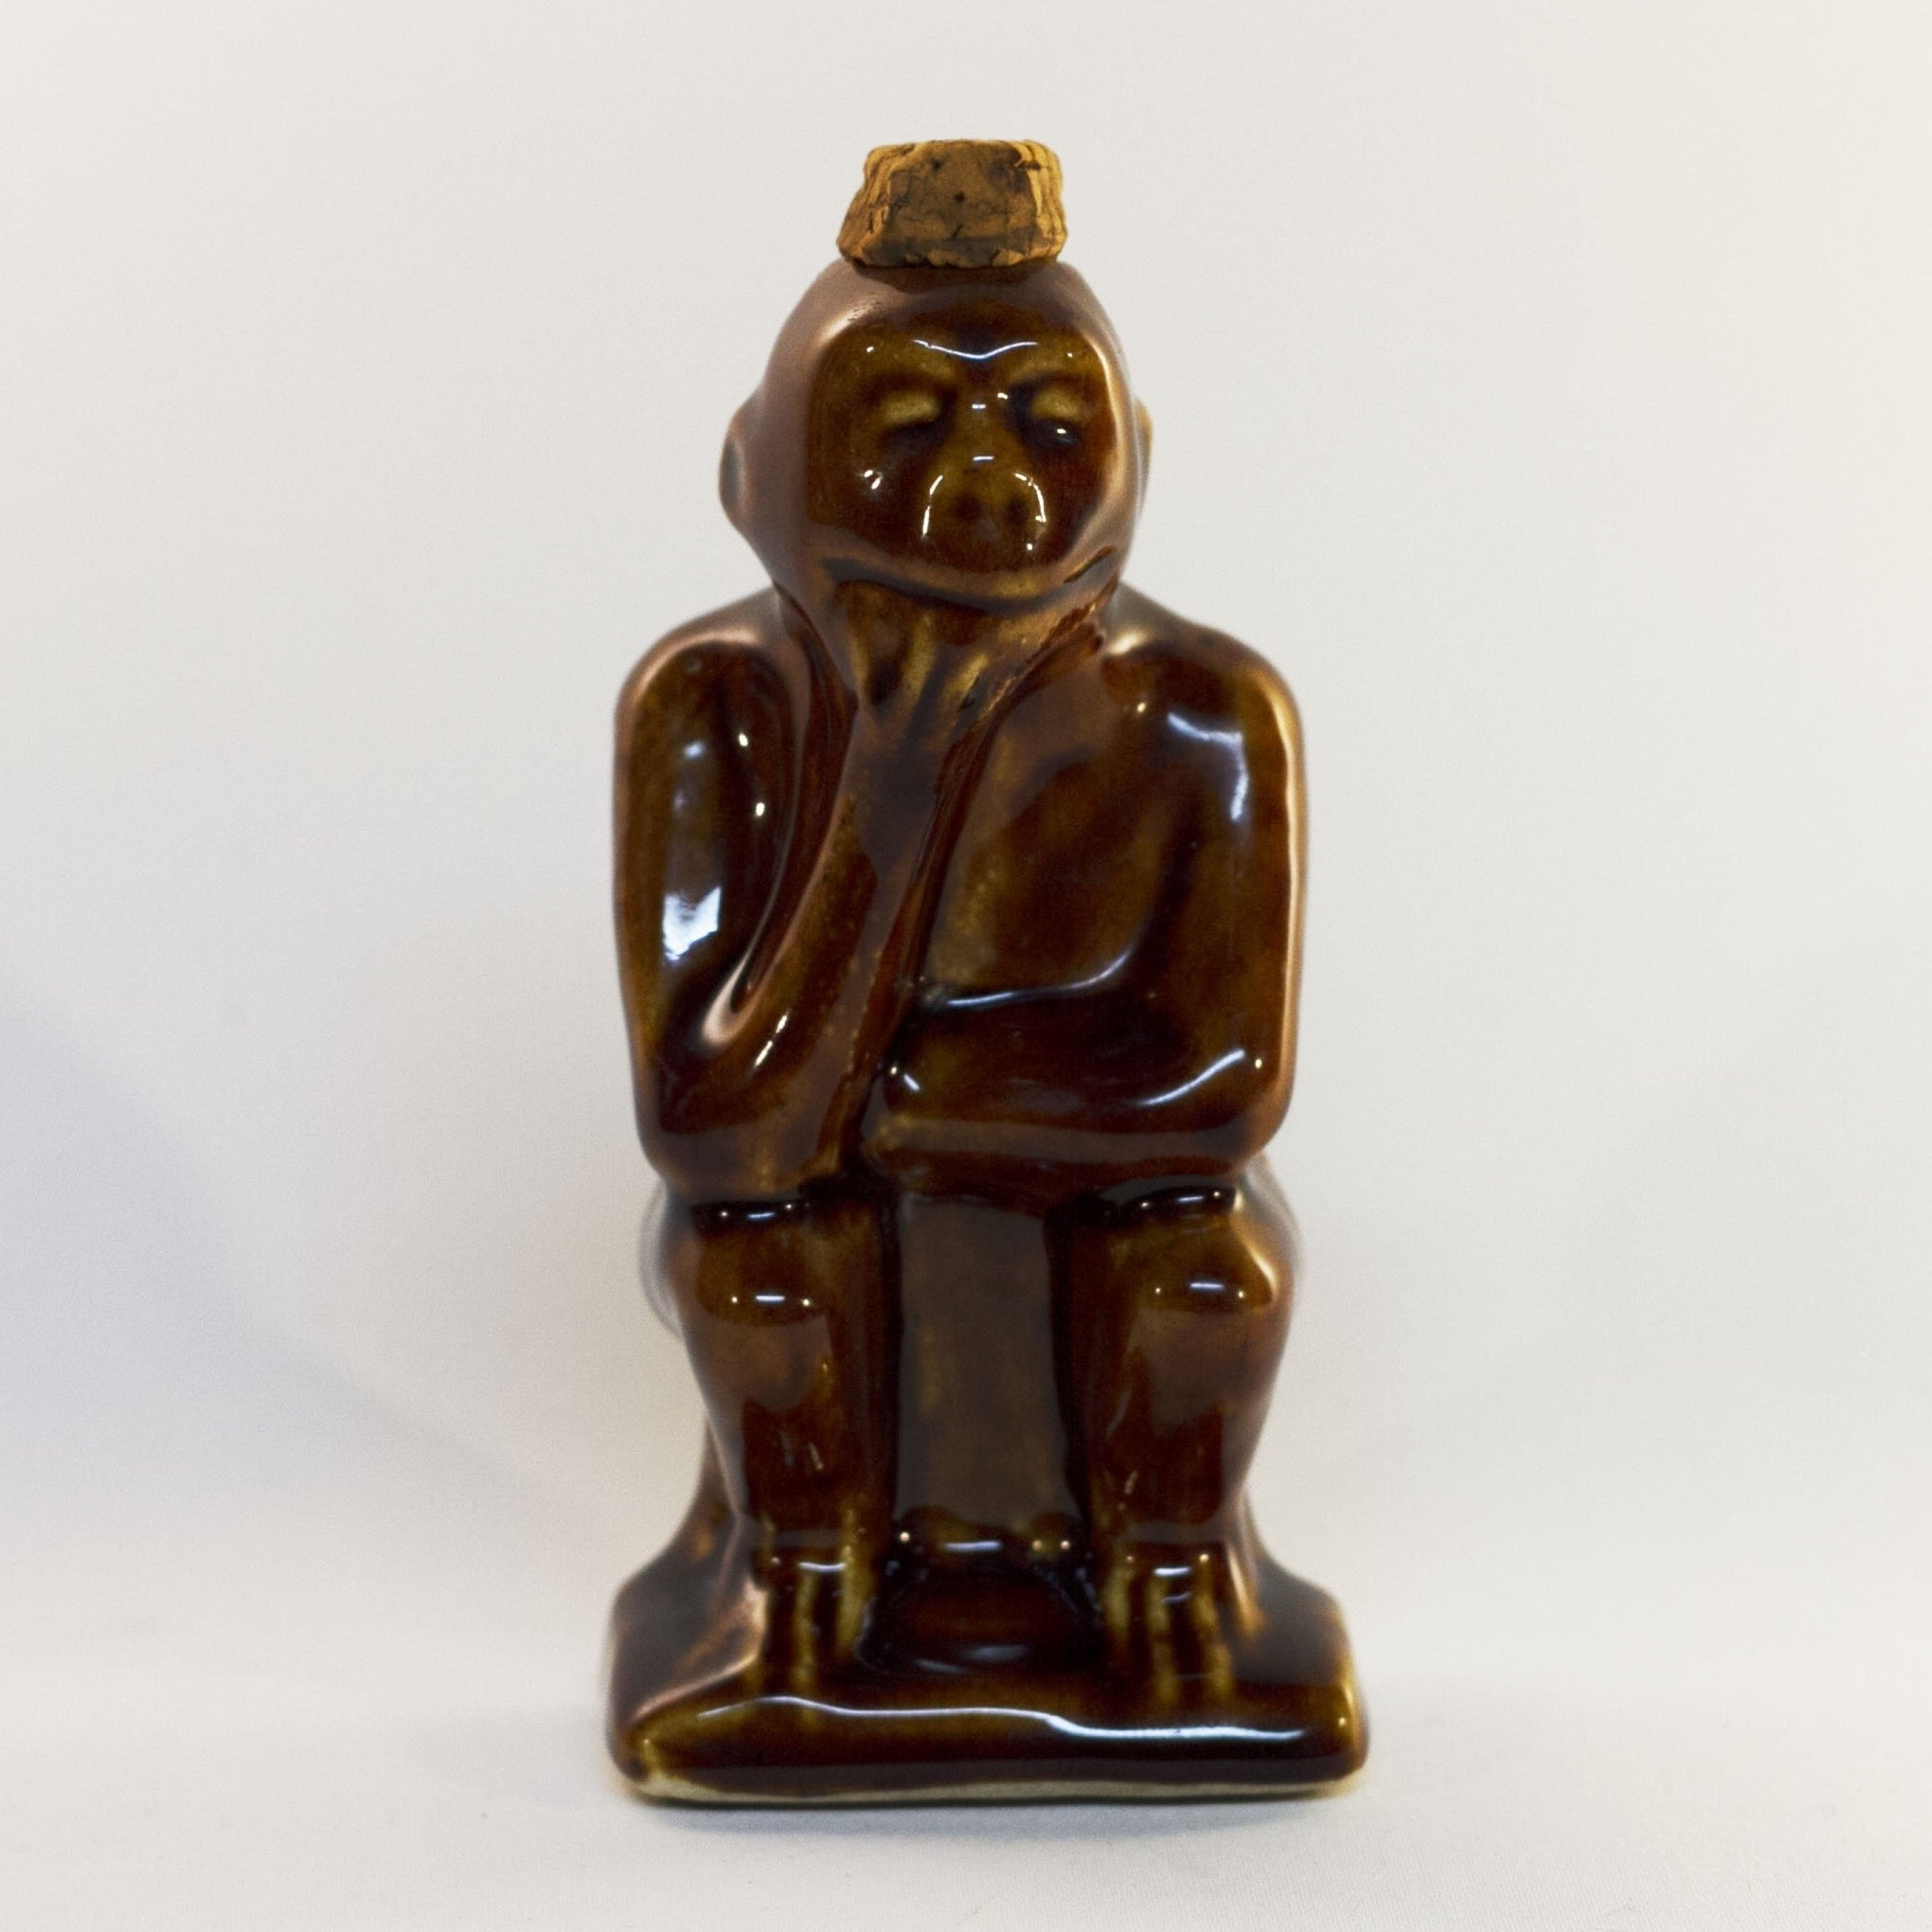 Early ART POTTERY Brown Glazed Bottle SITTING or THINKING MONKEY